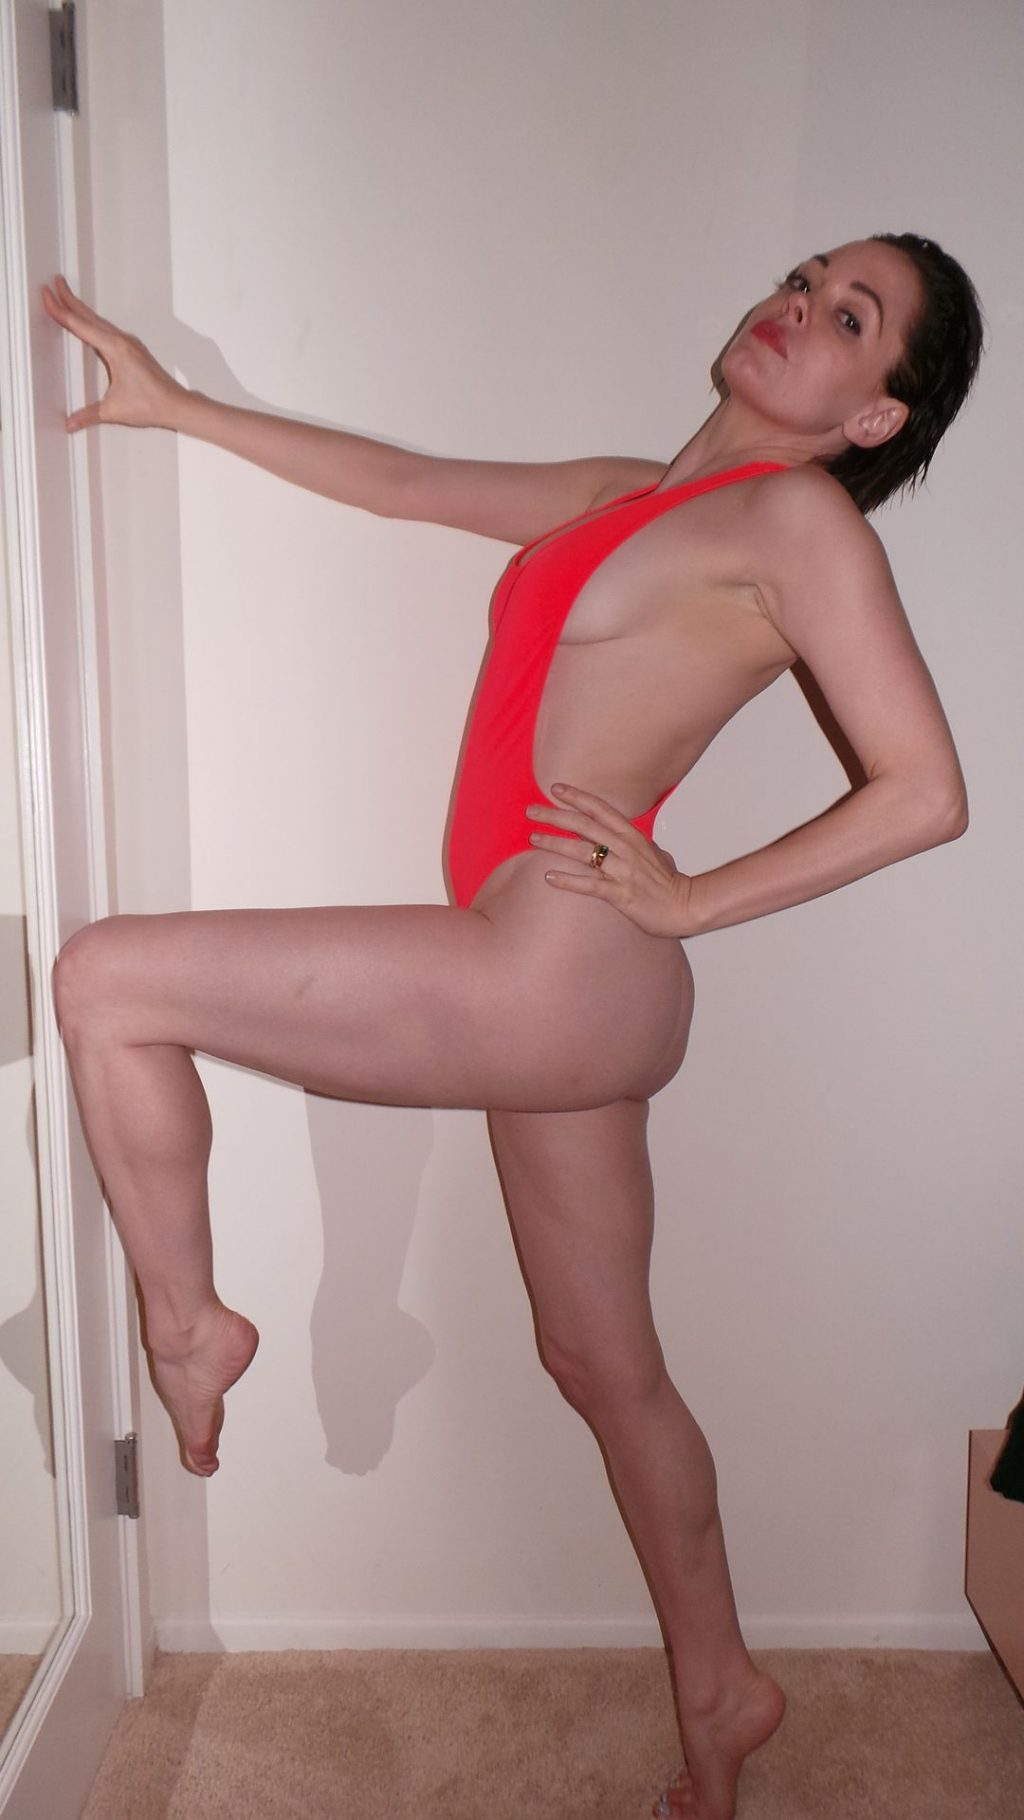 Rose McGowan Nude Leaked The Fappening (136 Photos)